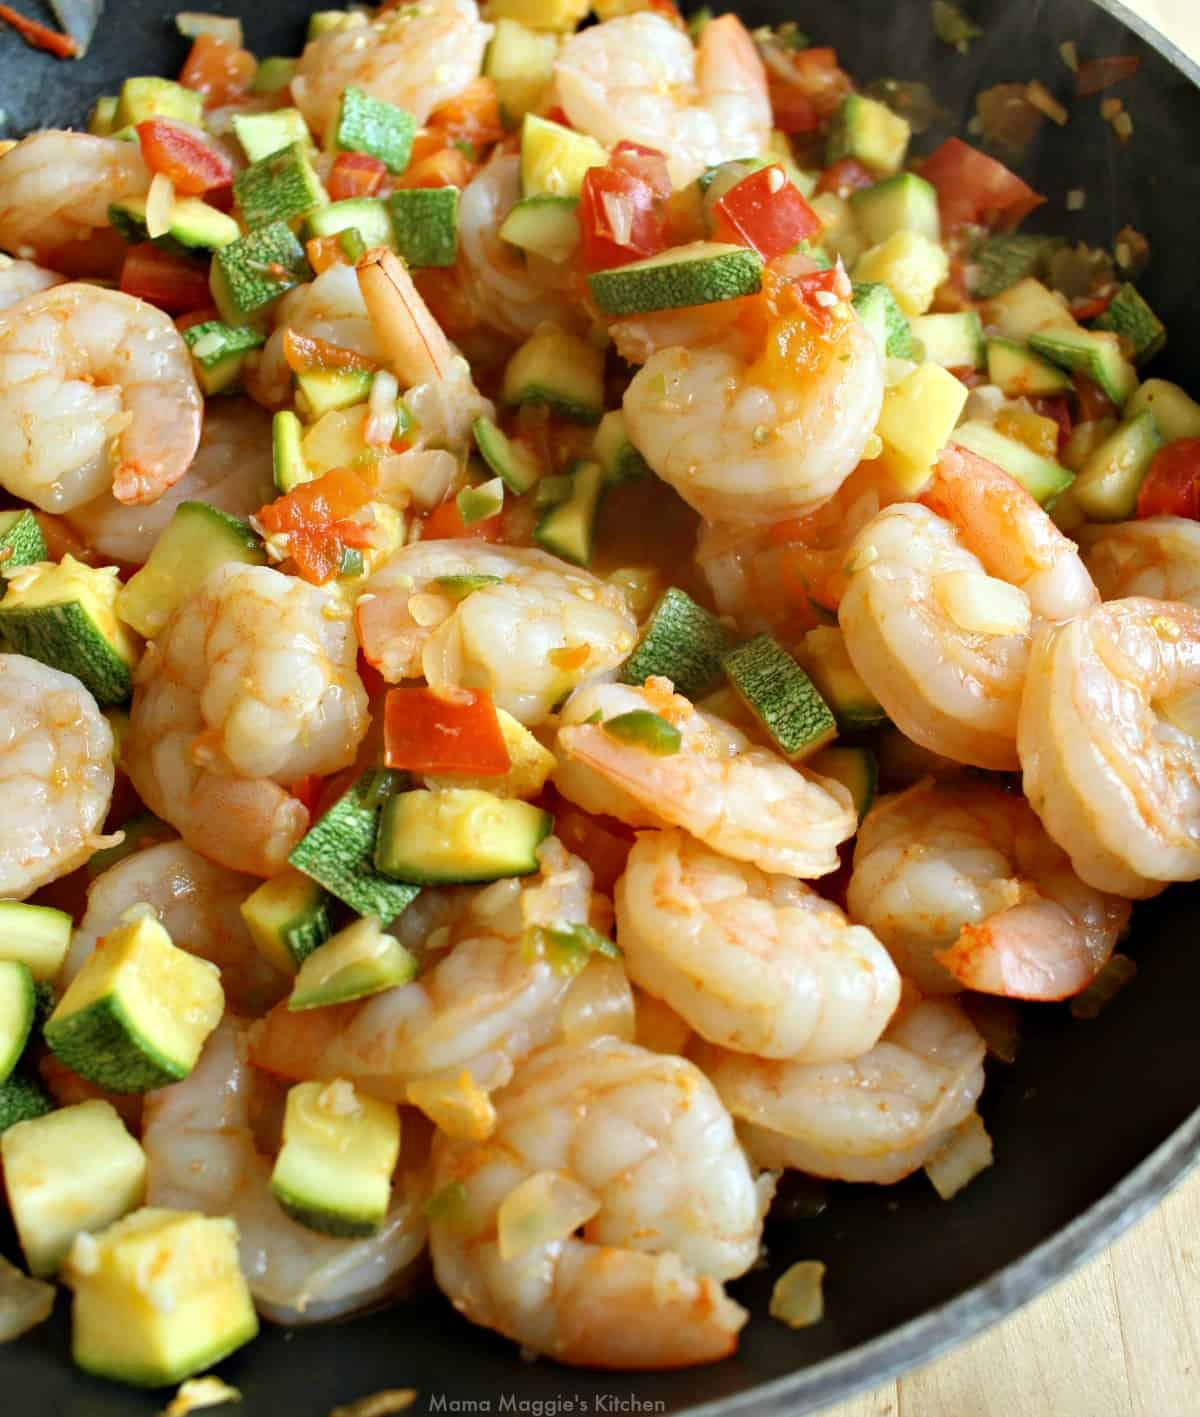 Cooked shrimp and calabacitas in a skillet.